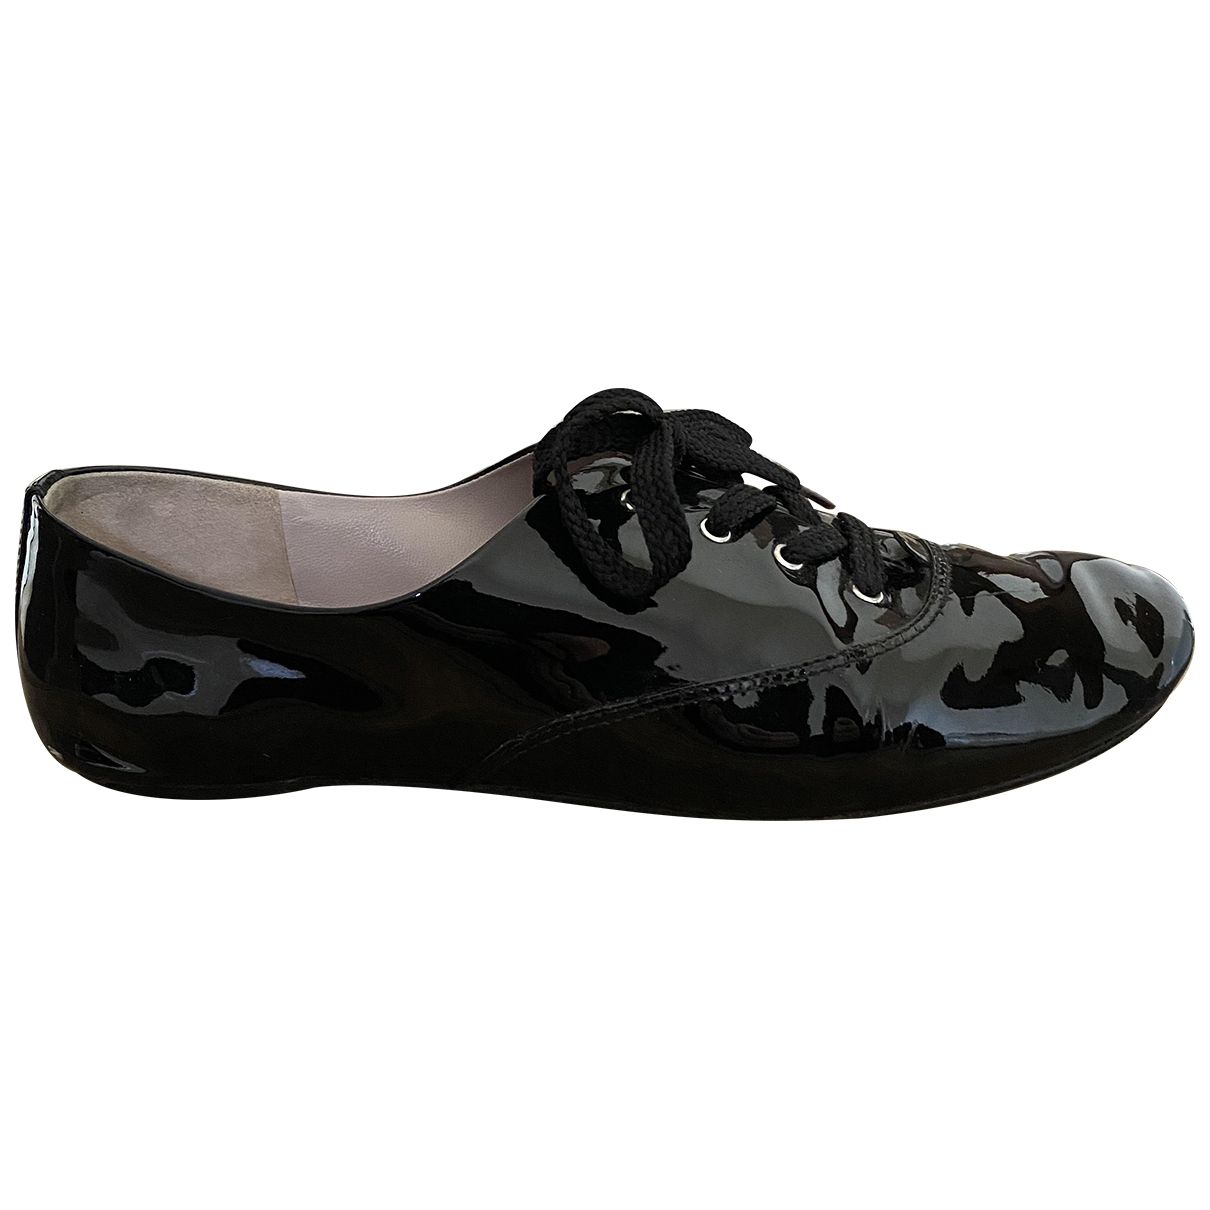 Marc By Marc Jacobs \N Black Patent leather Lace ups for Women 40 EU